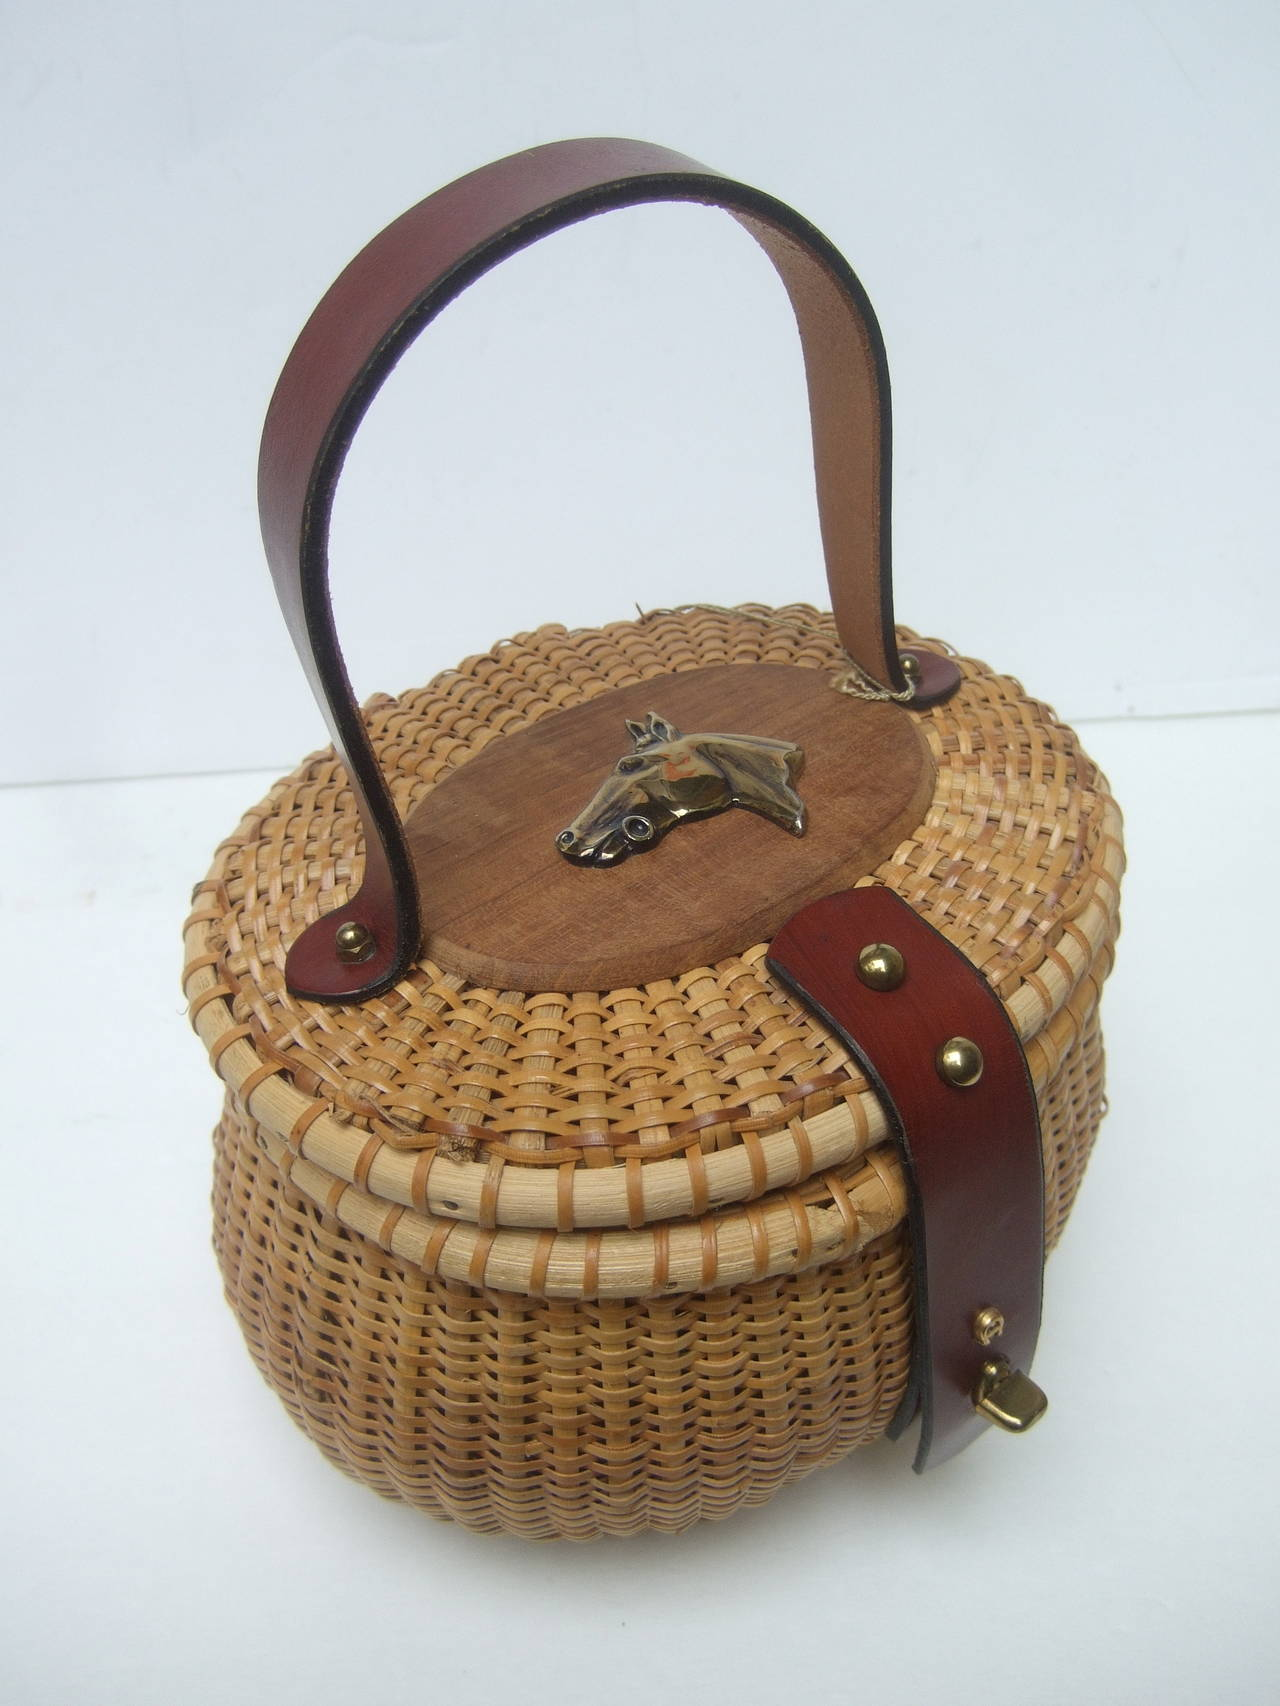 Women's Oval Wicker Basket Equestrian Theme Handbag c 1970s For Sale